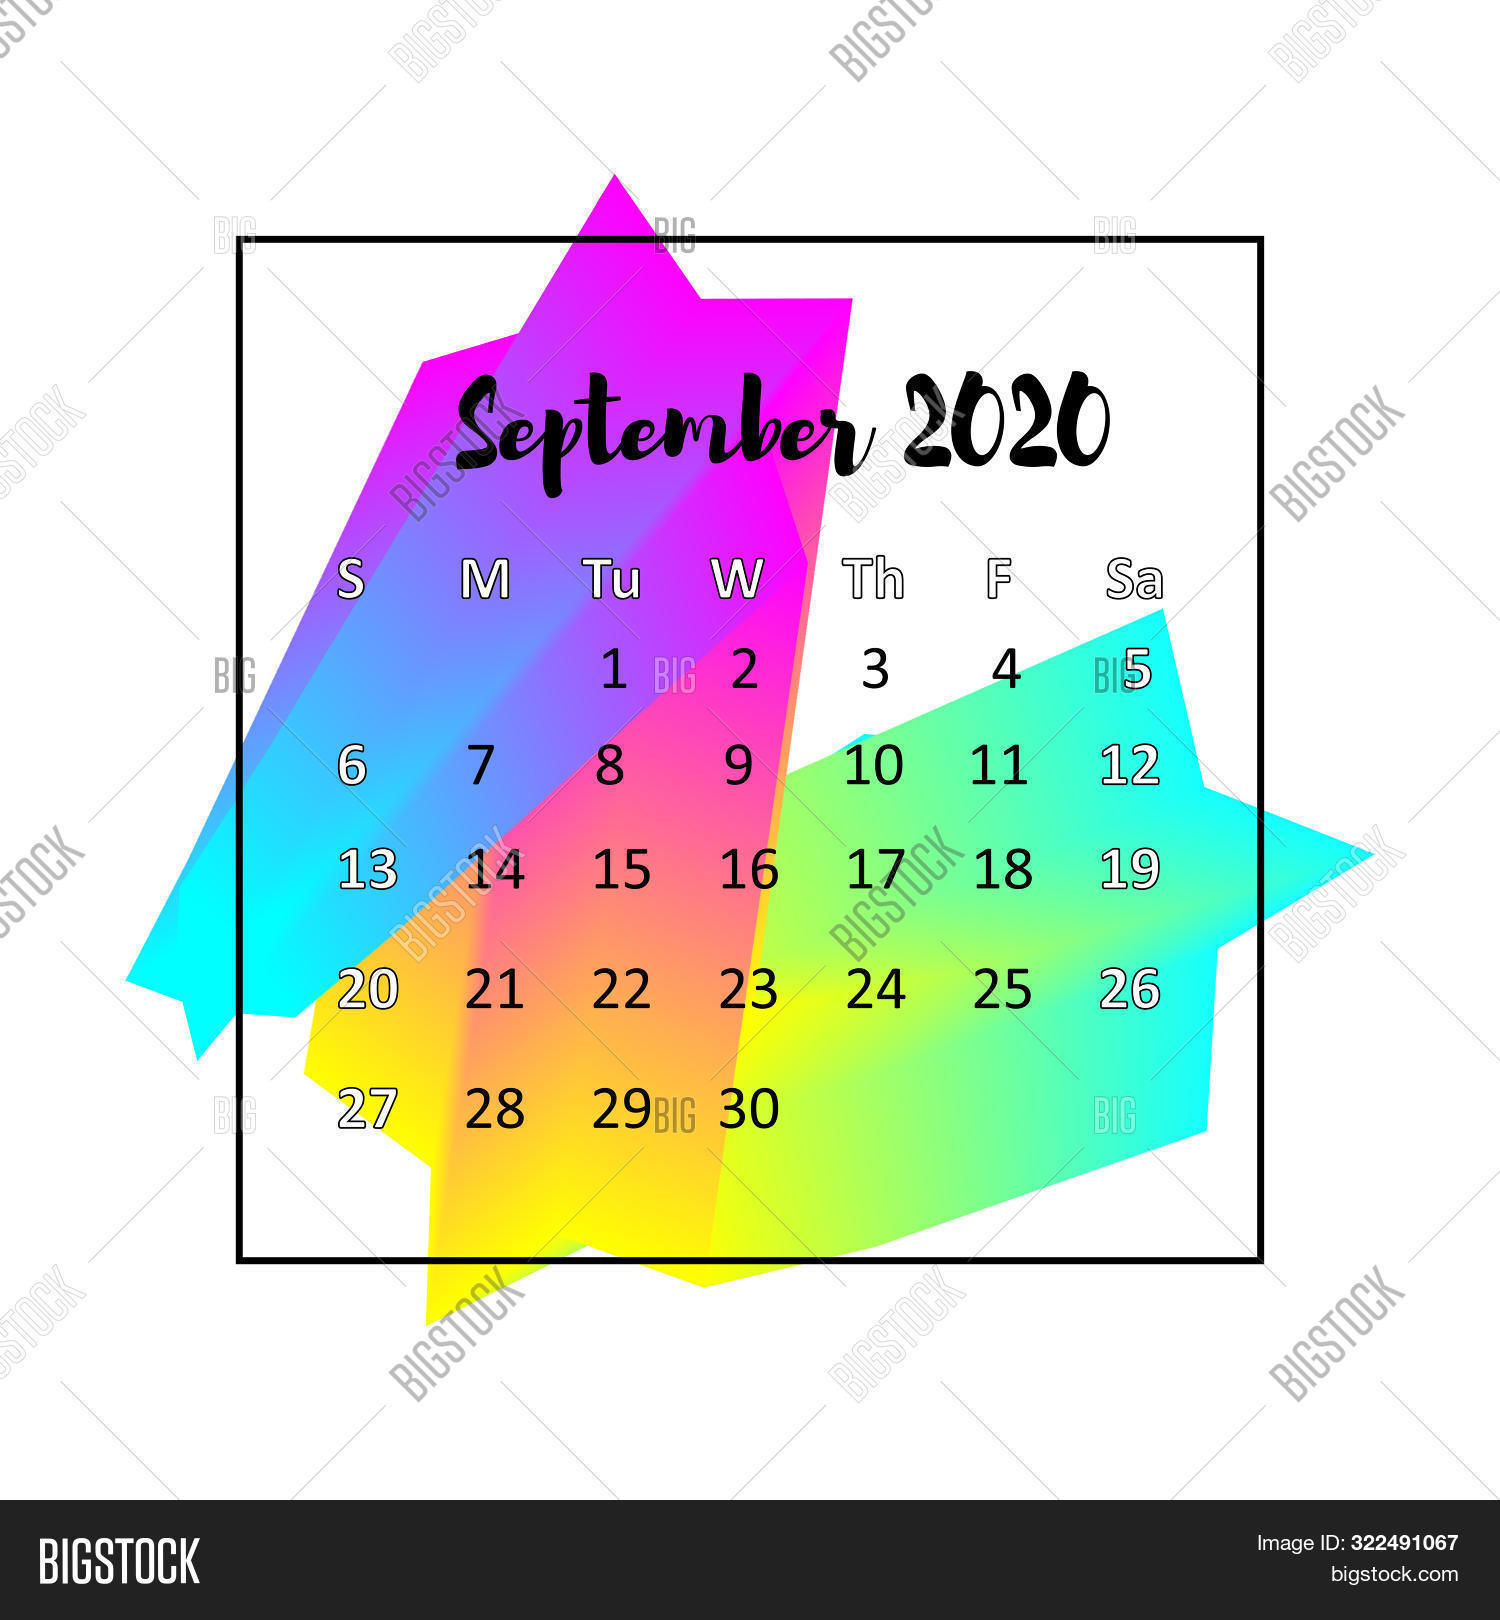 2020 Calendar Design Abstract Concept. September 2020. Business Wall Or Web Calender Template. Minim